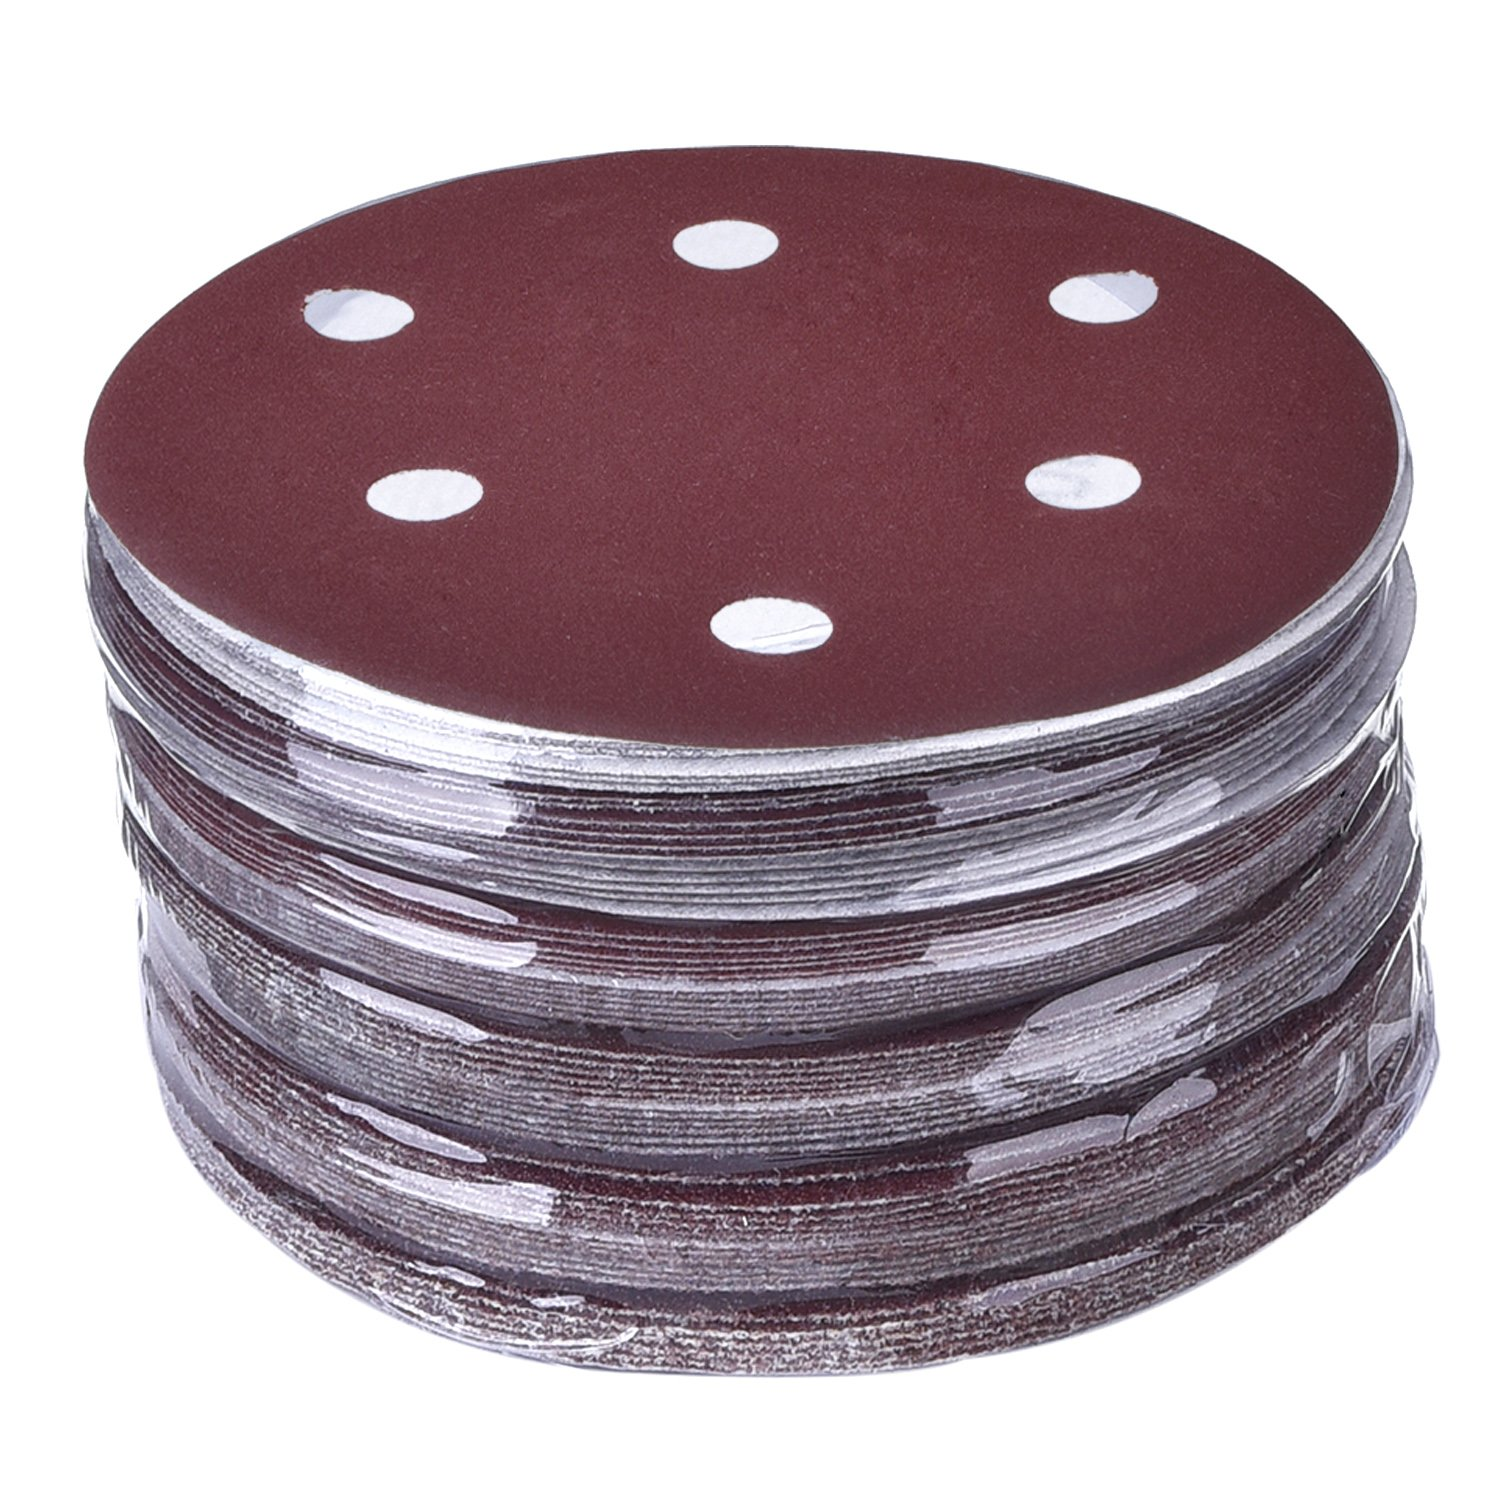 eBoot 60 Pieces 5 Inch Sanding Discs Sandpaper Hook and Loop Pads 40/ 60/ 80/ 100/ 120/ 180/ 240/ 320/ 400/ 800 Assorted Grits 6-Holes